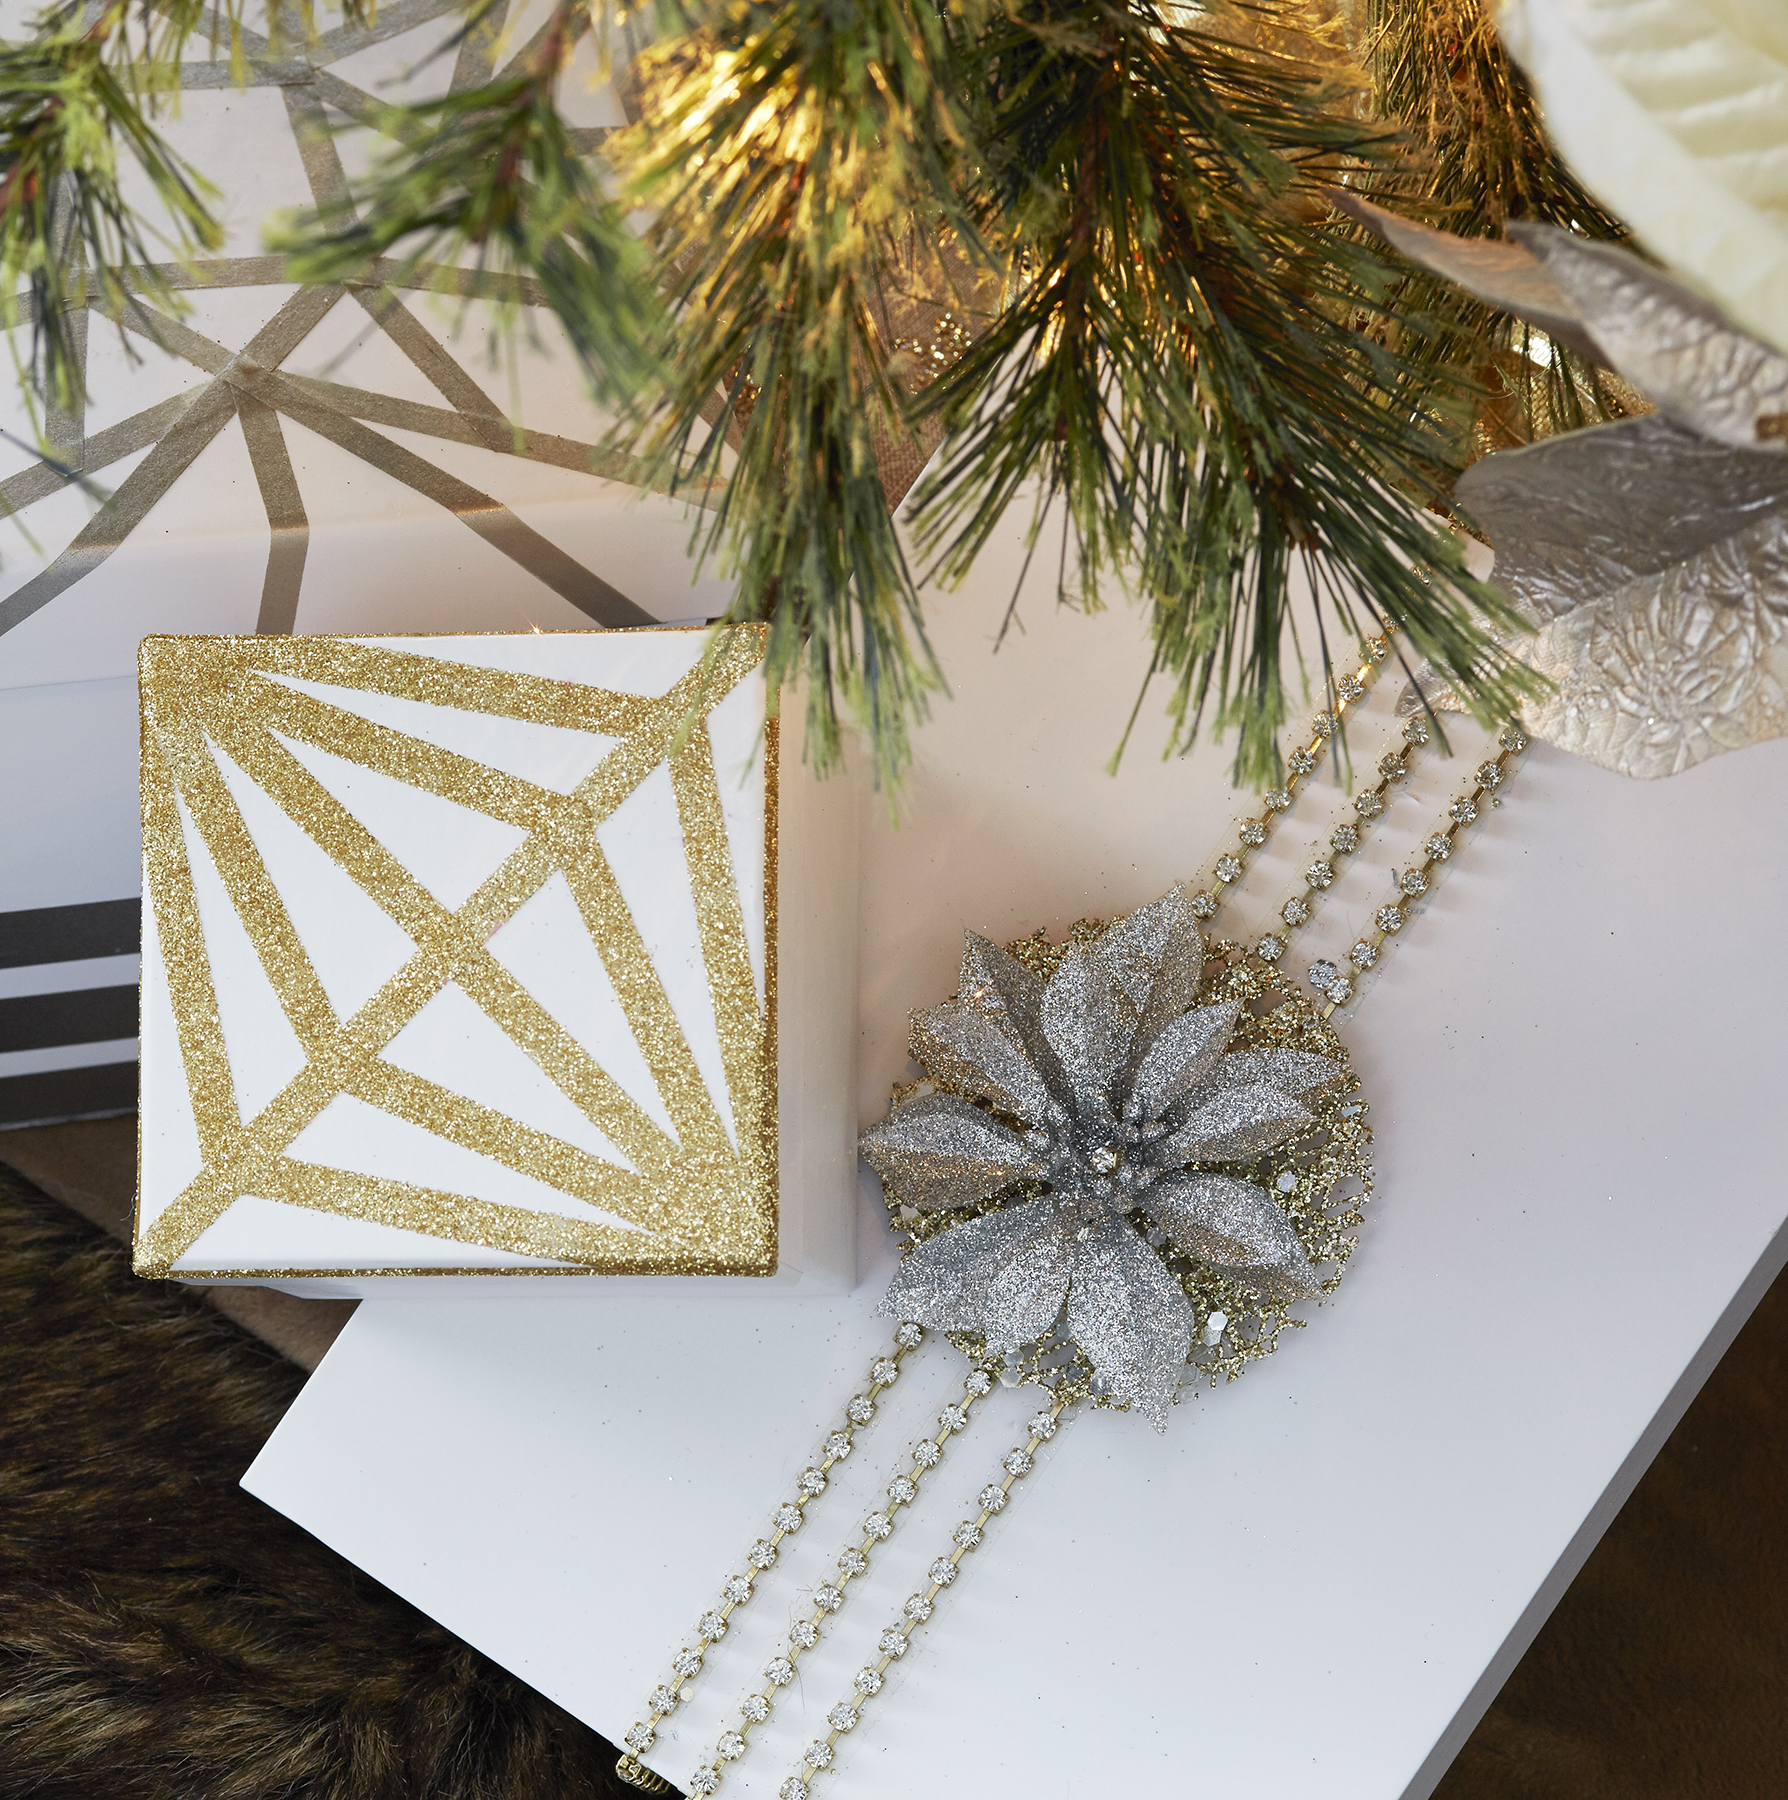 Michael's embellished gifts